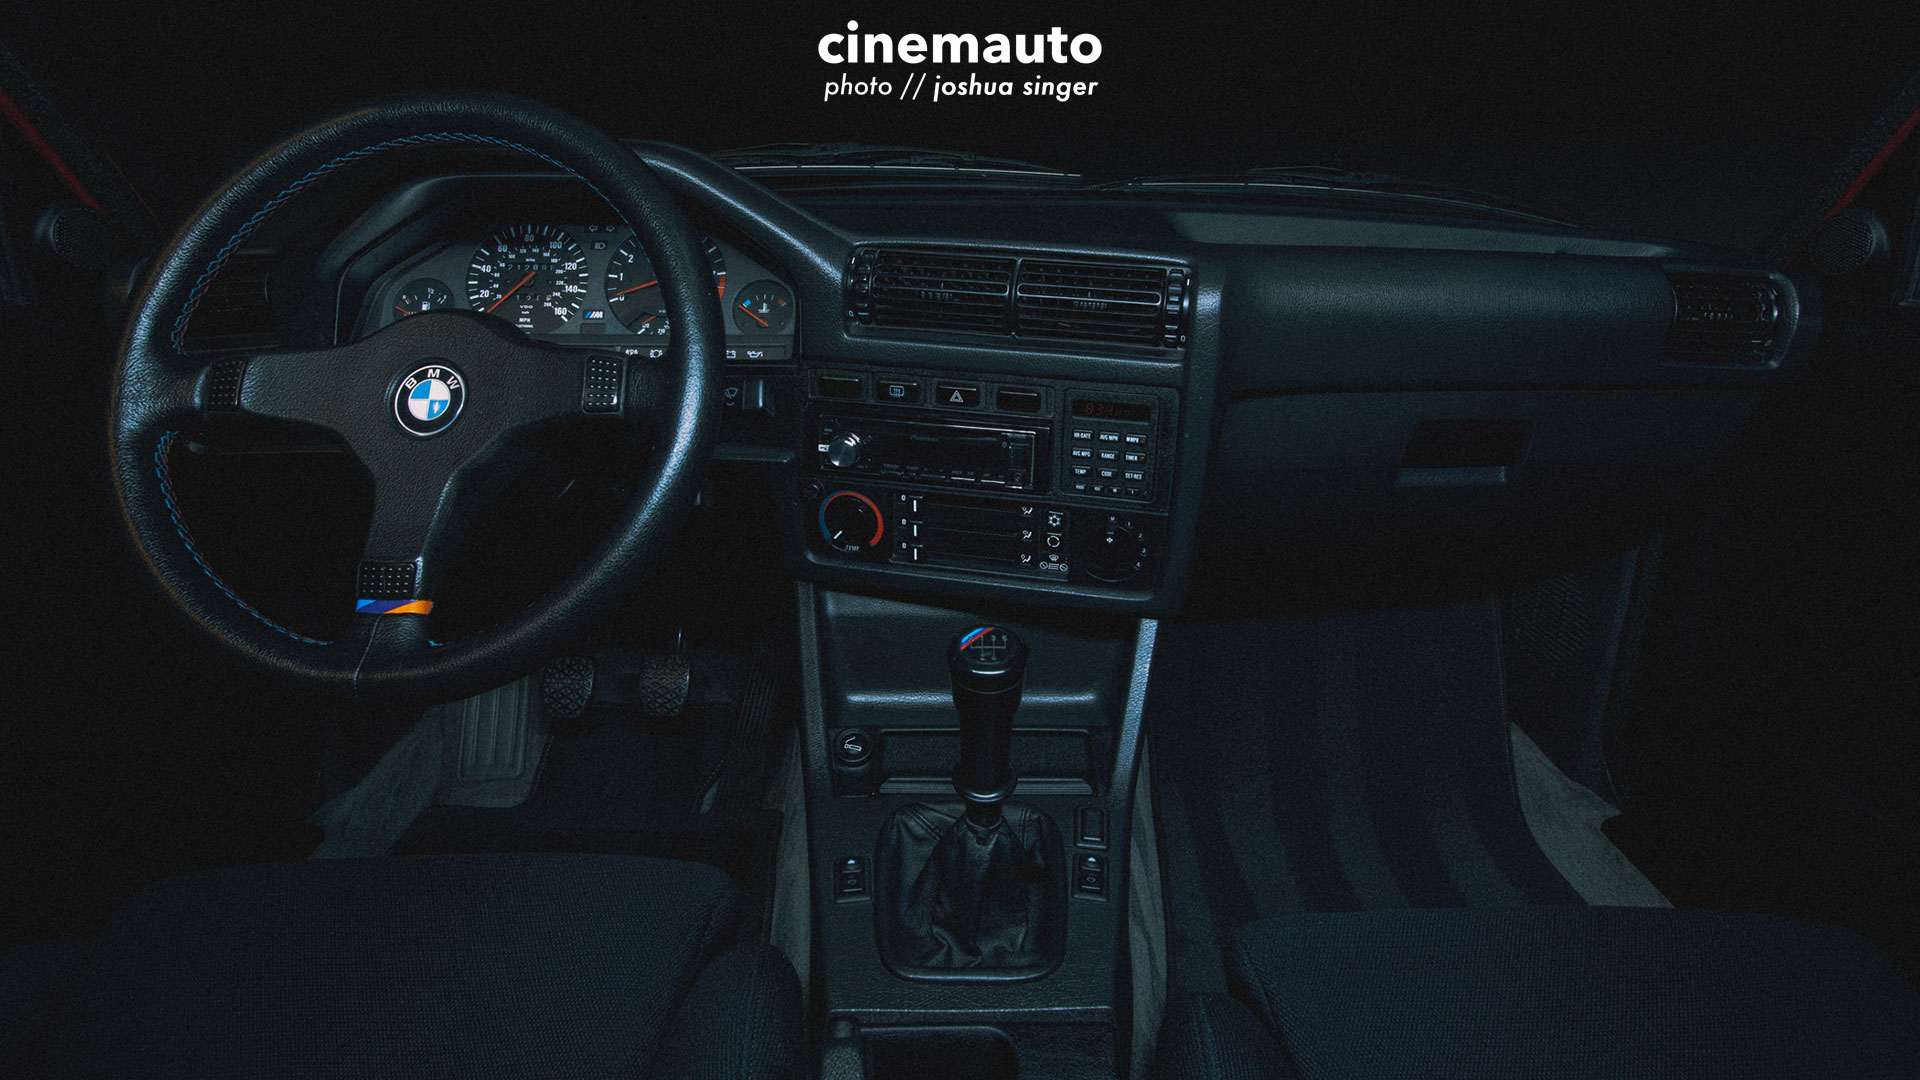 cinemauto-wichita-automotive-videography-midwest-car-cinematography-kk11.jpg